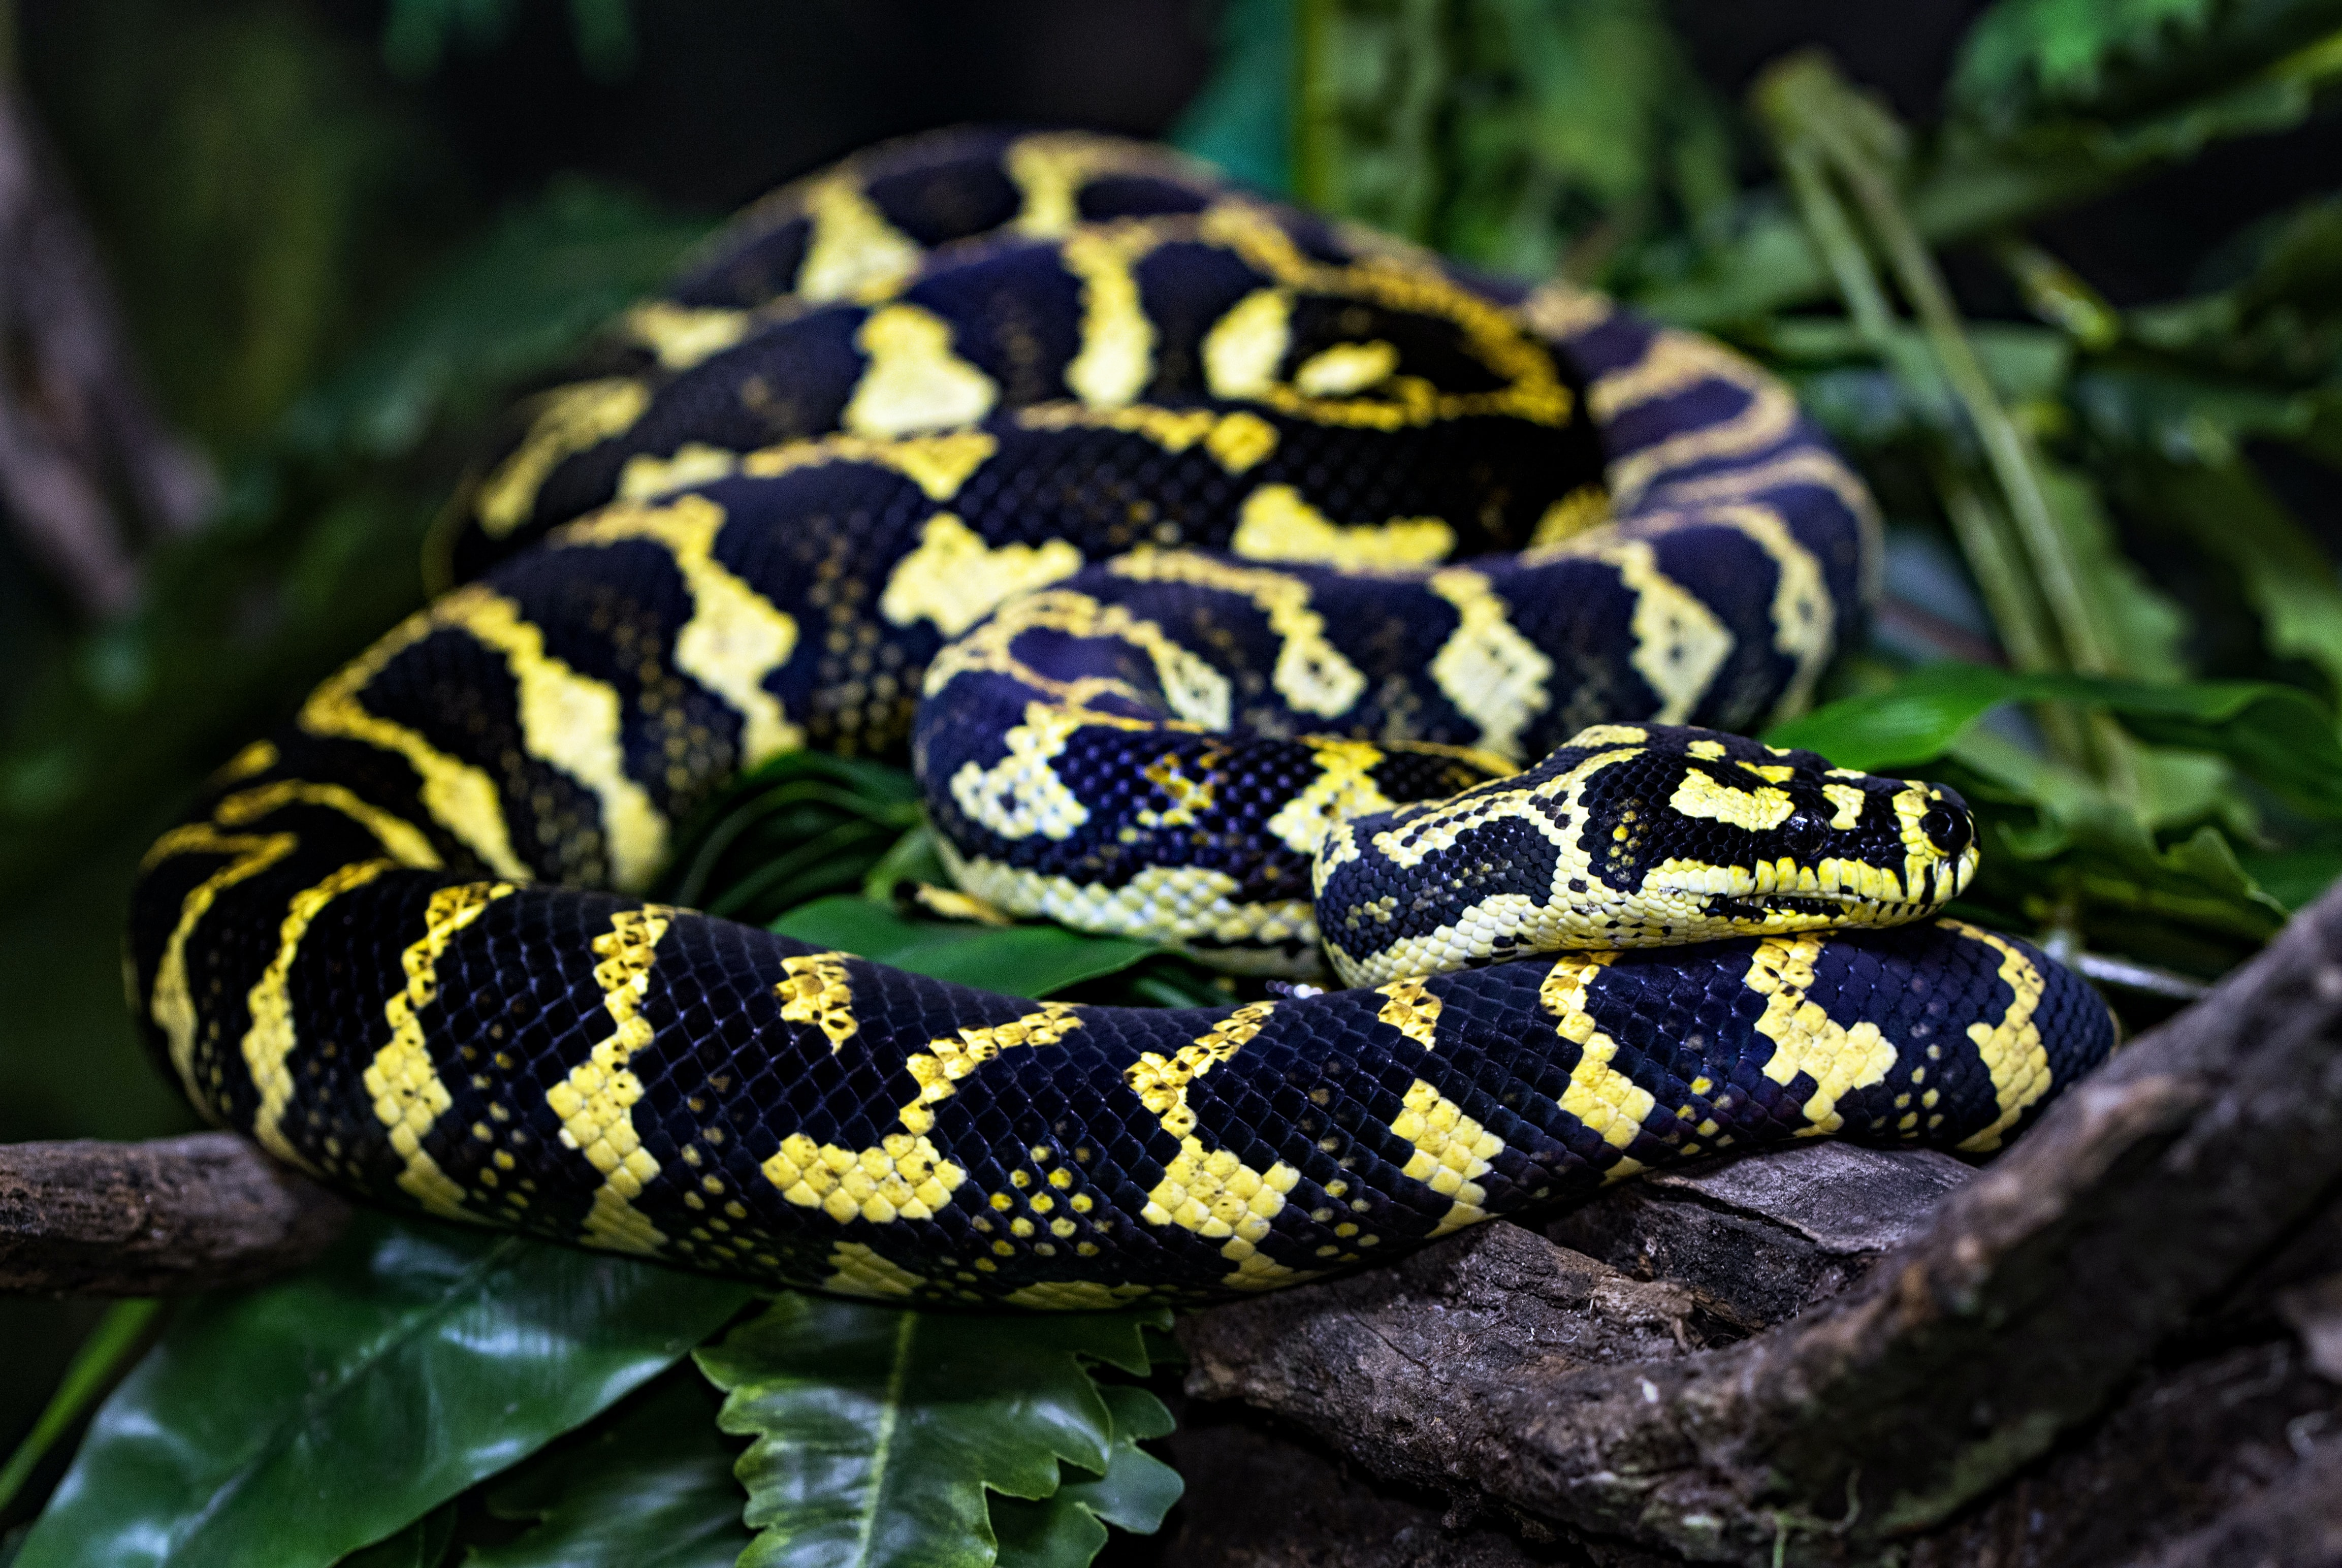 shallow focus photography of black and yellow snake